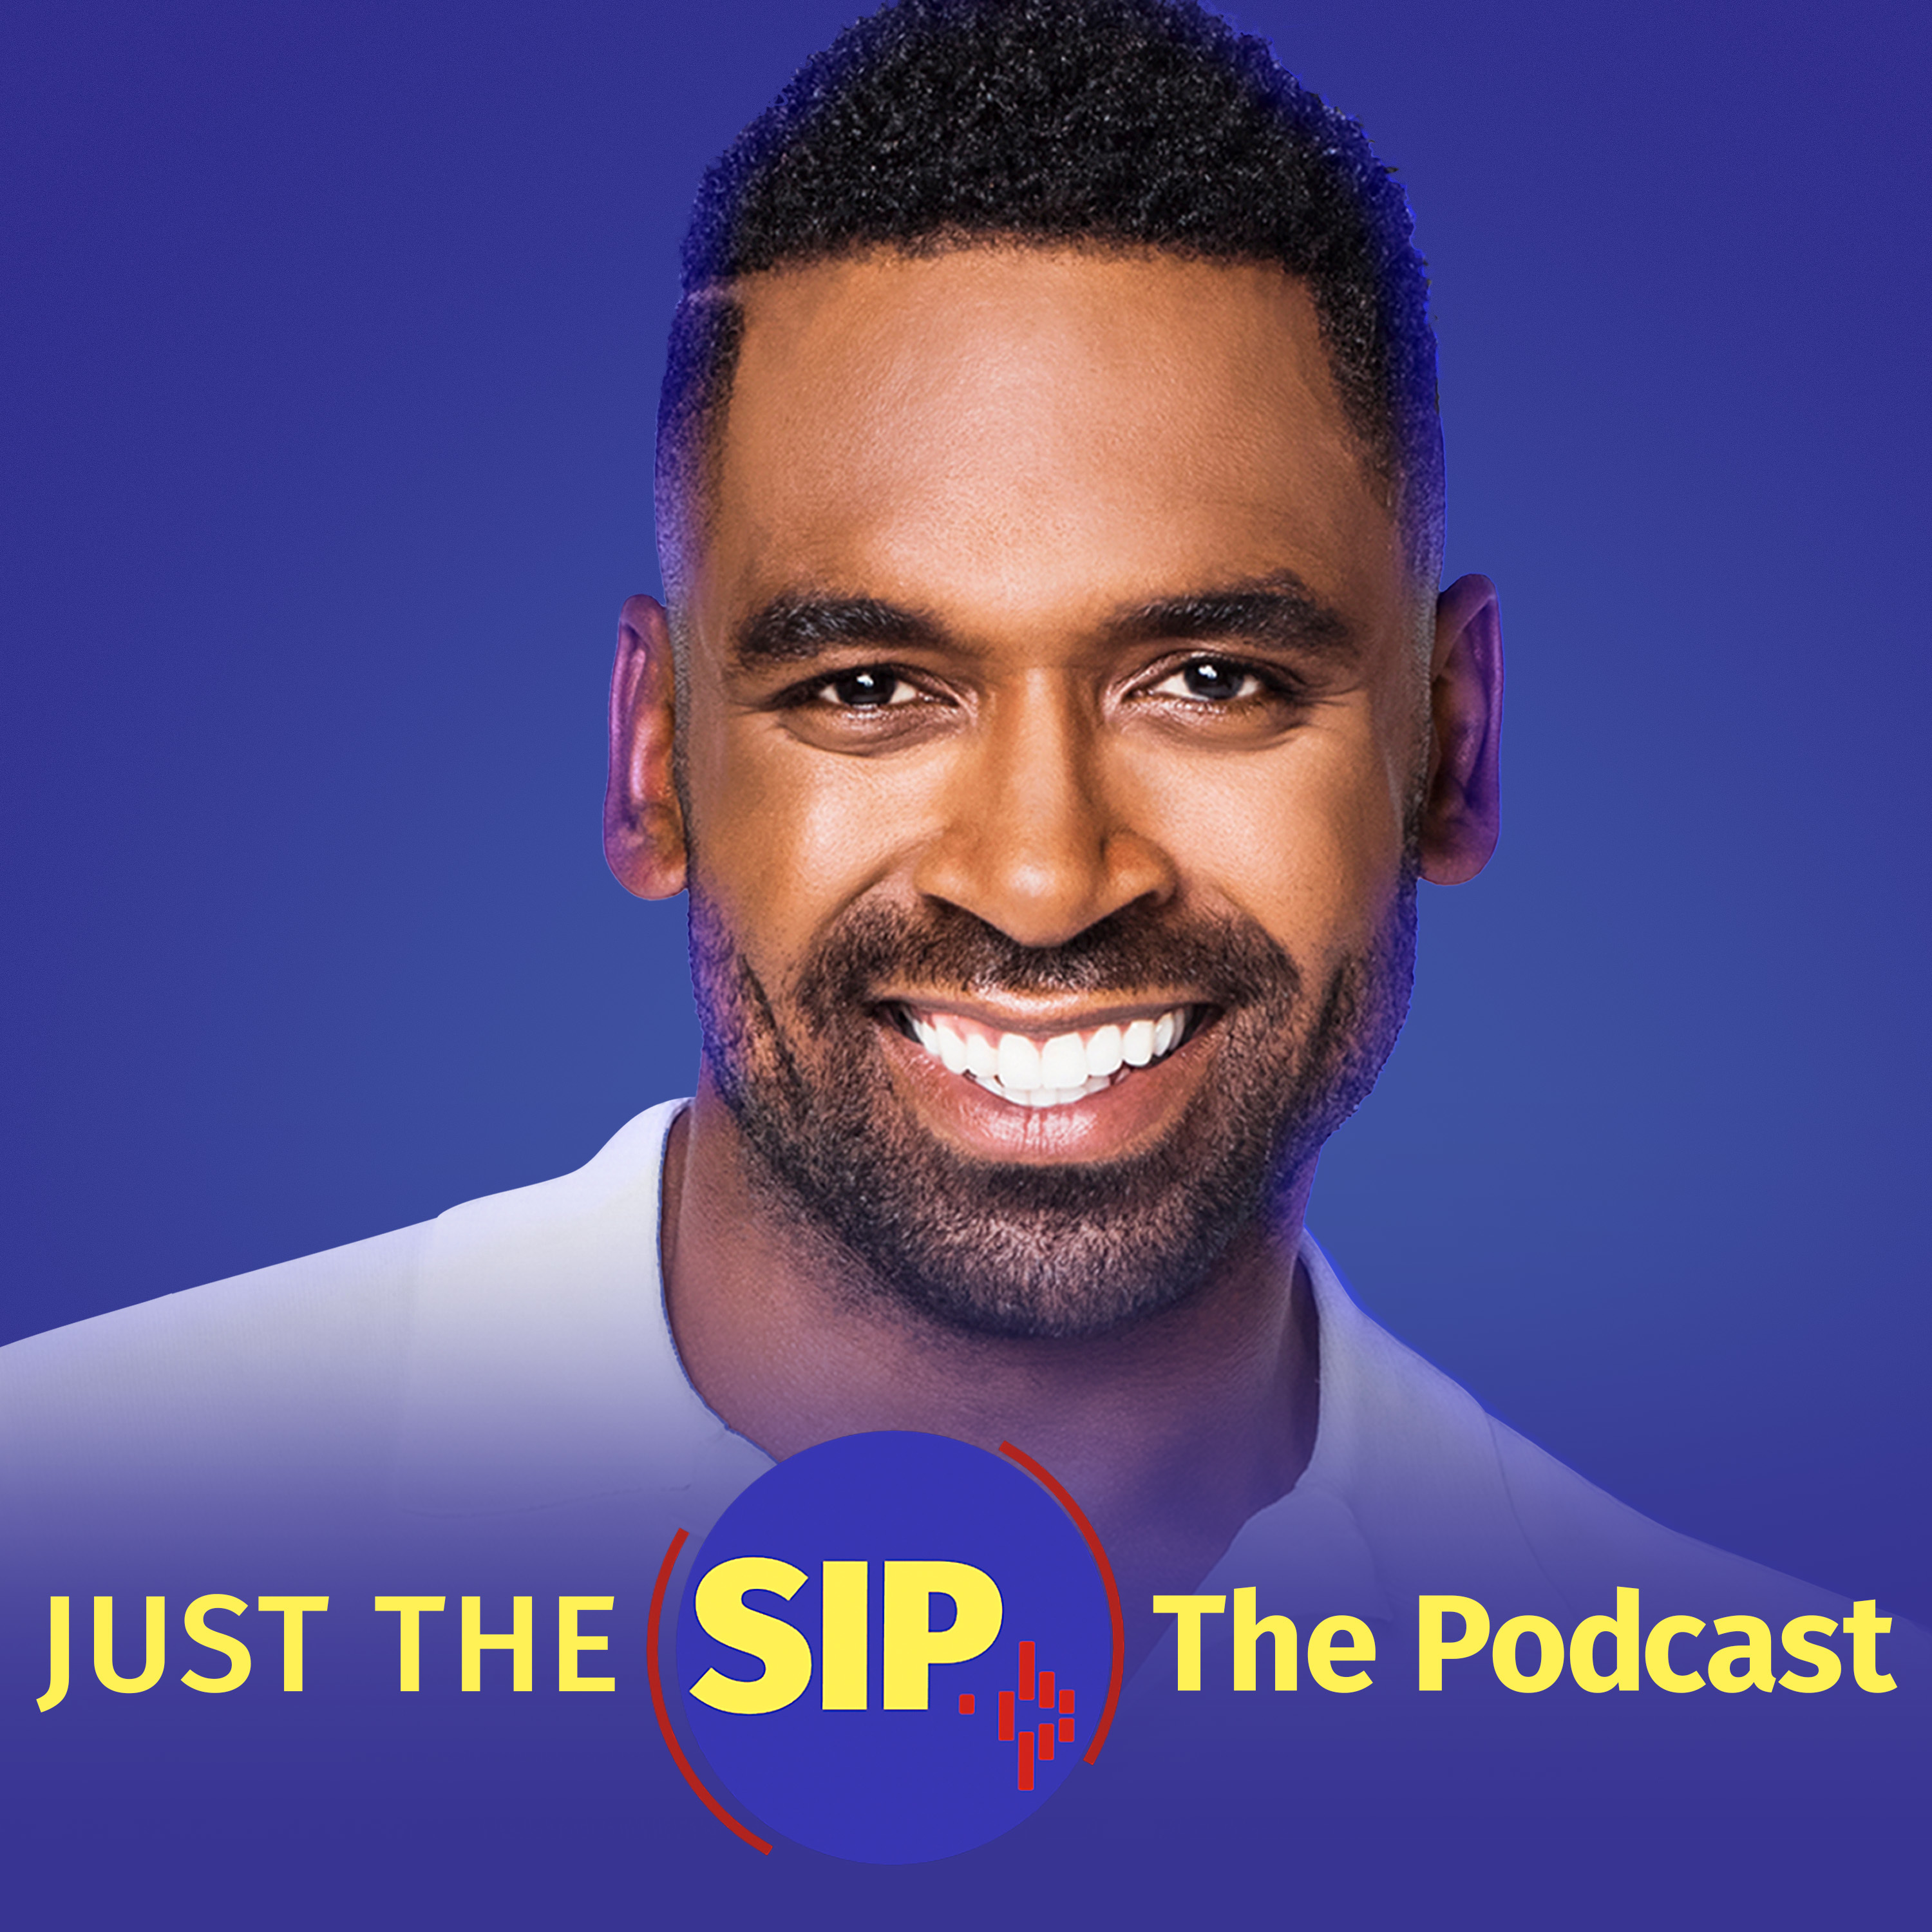 An Honest Conversation About Race With Sergeant Chris Swanson - Just The Sip 06/03/20